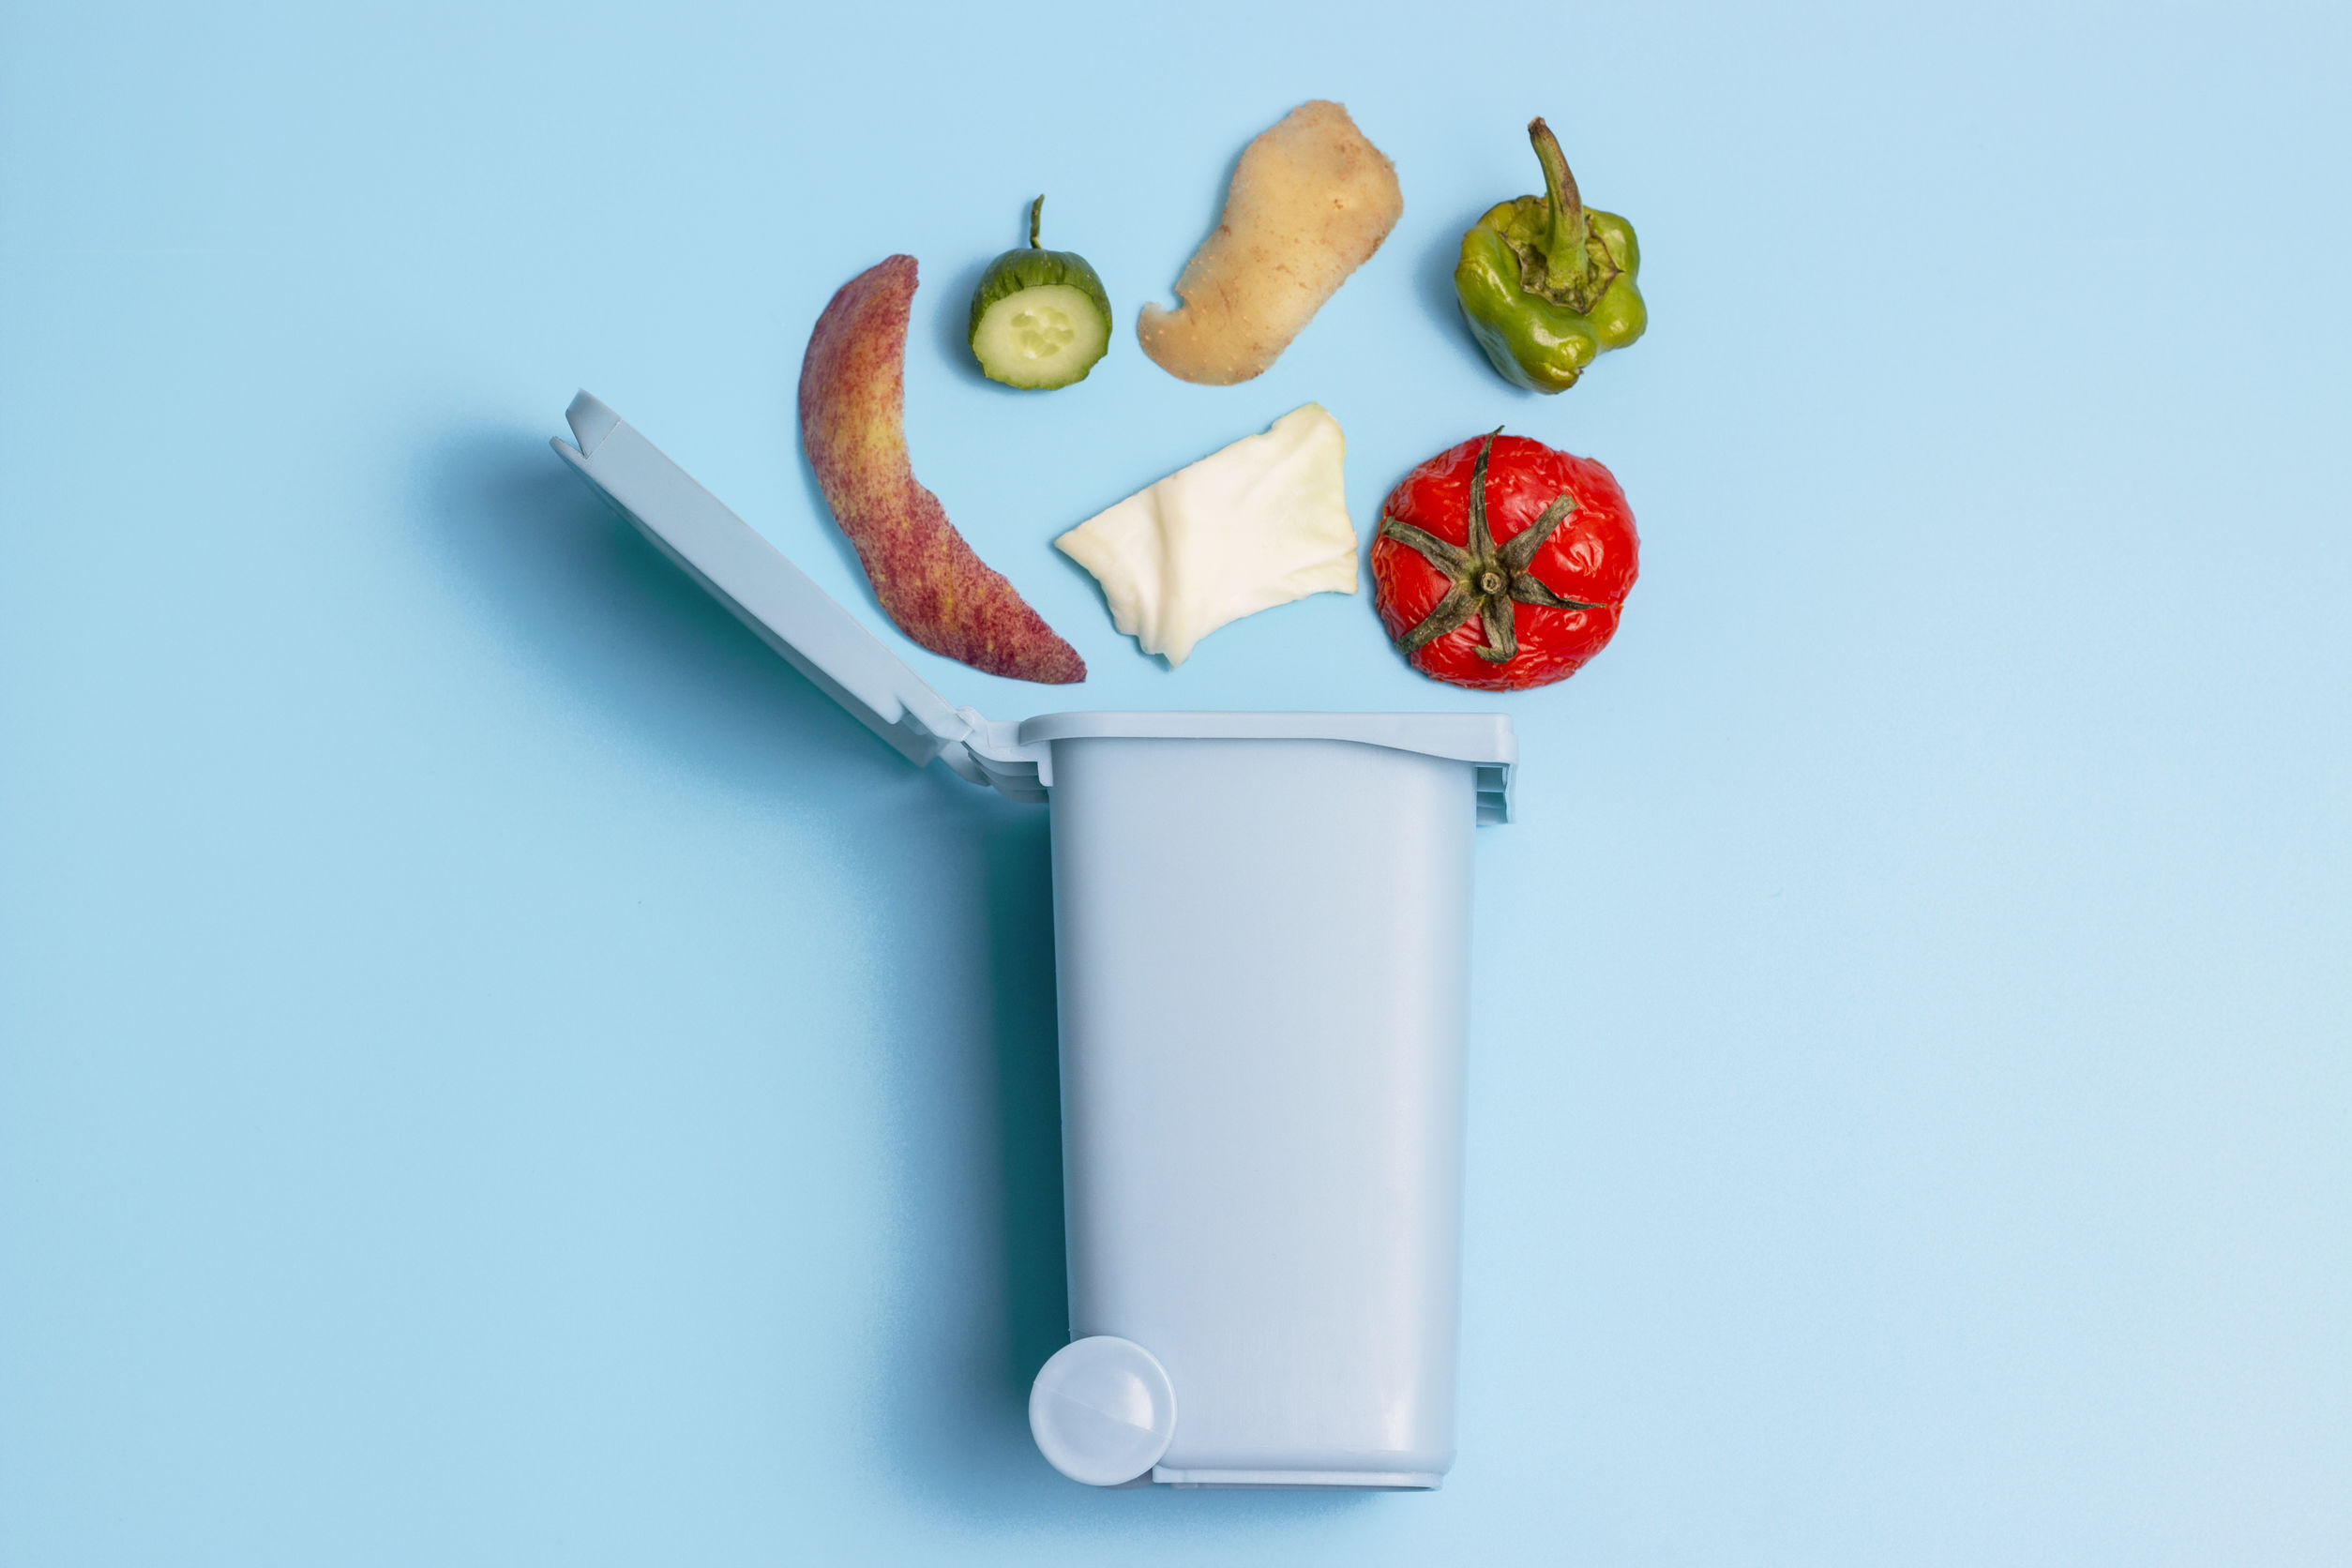 Food waste and trash can on blue background, concept of garbage sorting